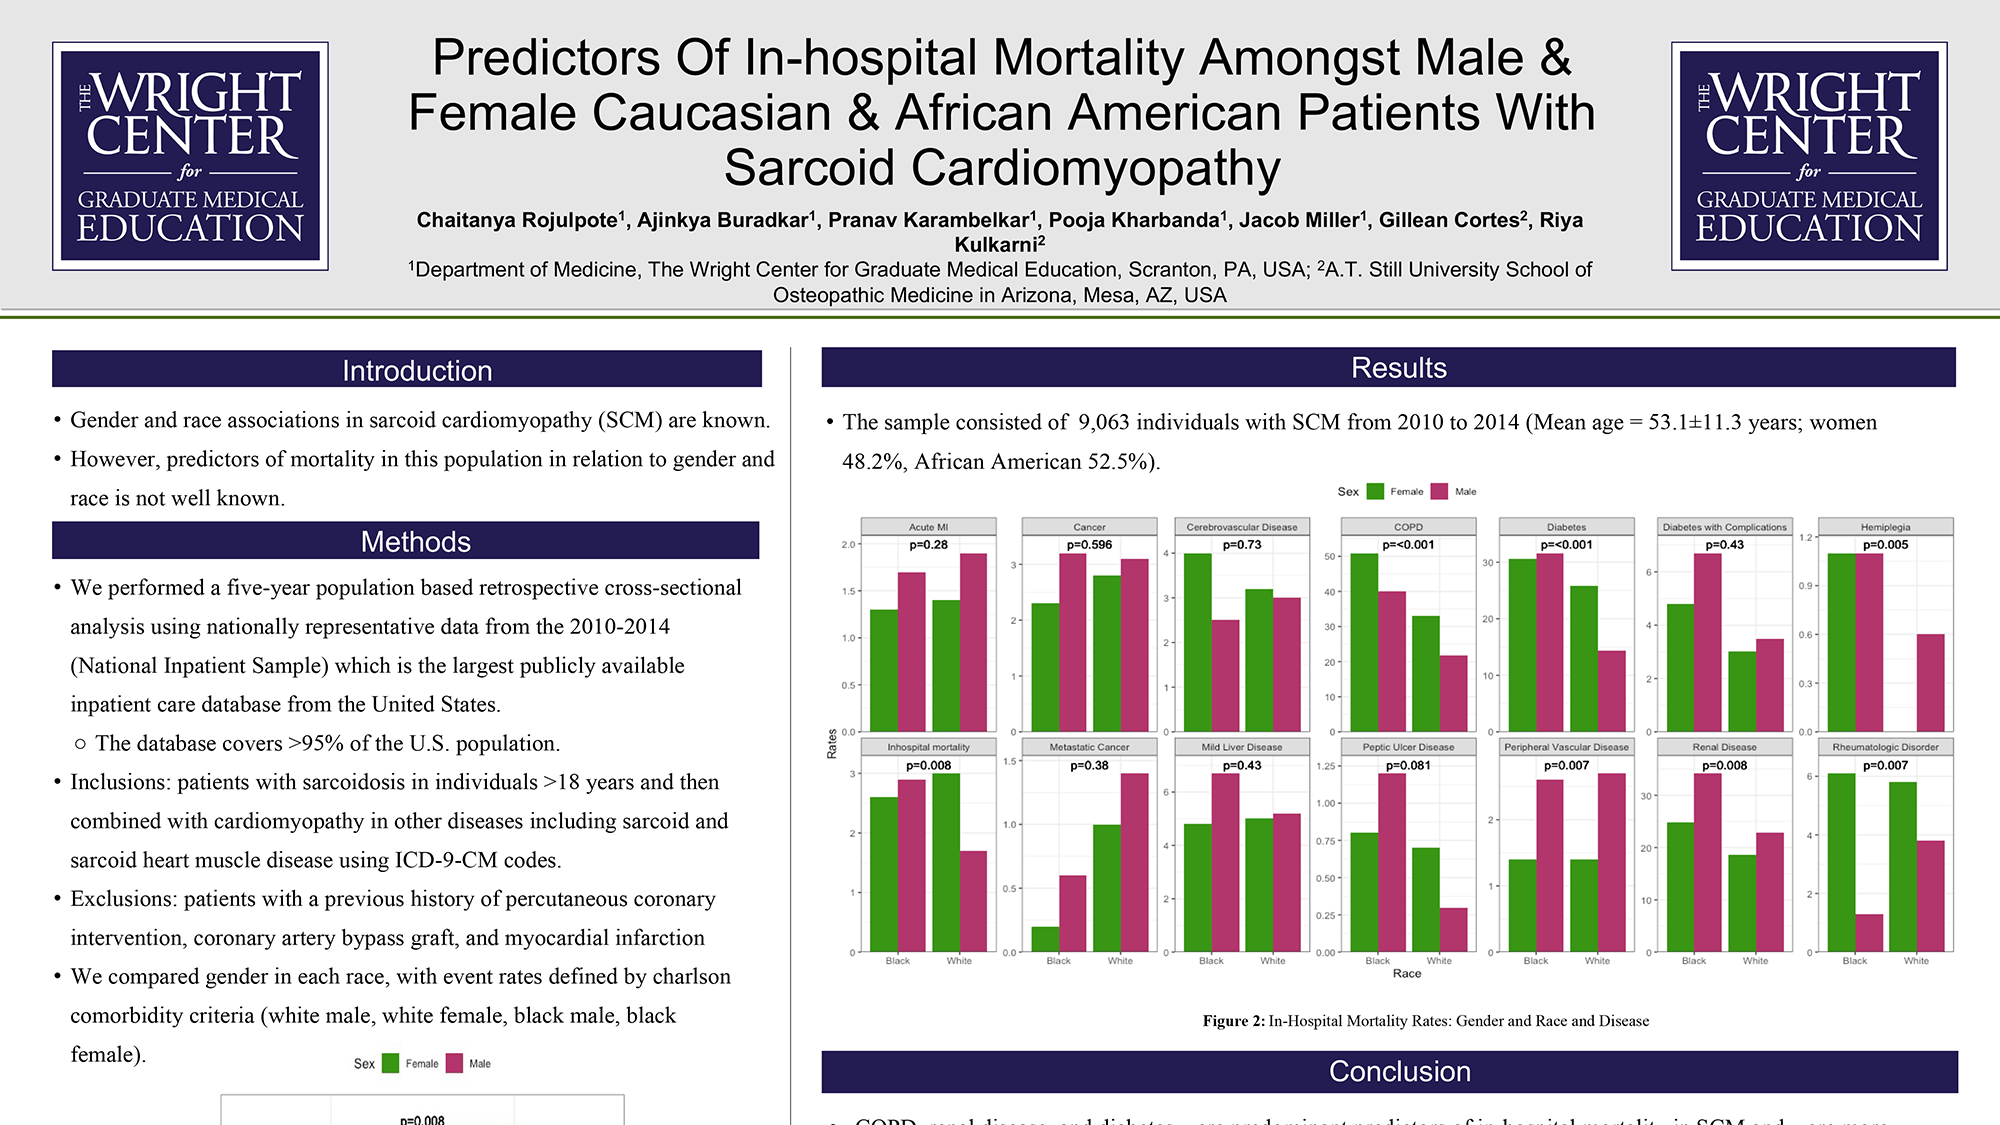 Chaitanya Rojulpote - PAE-157-Predictors-Of-In-Hospital-Mortality-Amongst-Male-&-Female-Caucasian-&-African-American-Patients-With-Sarcoid-Cardiomyopathy